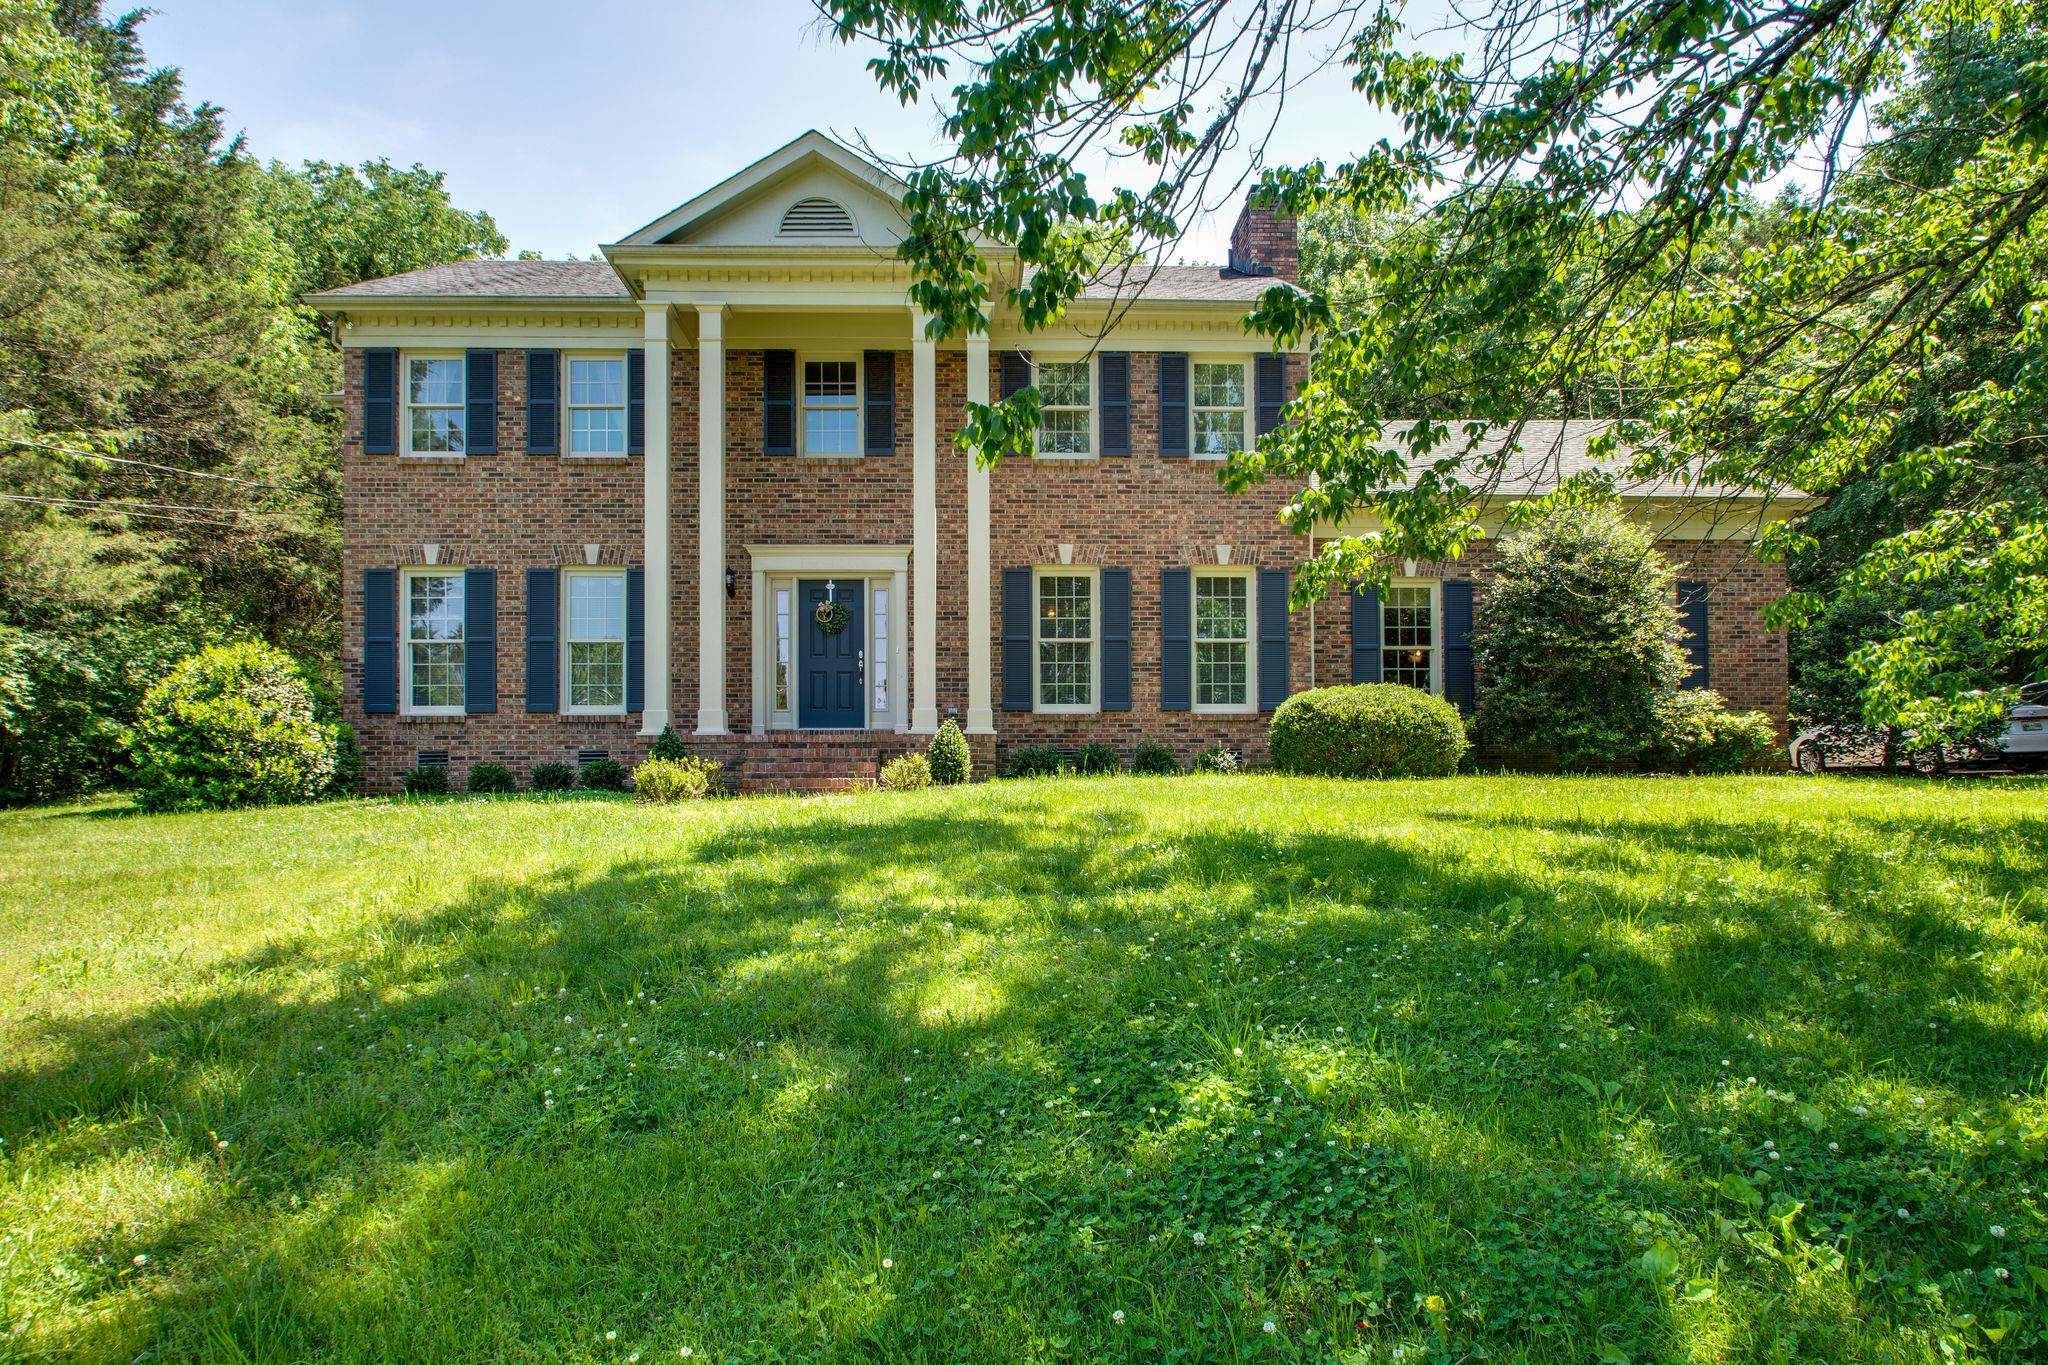 6021 Temple Rd, Bellevue in Williamson County County, TN 37221 Home for Sale